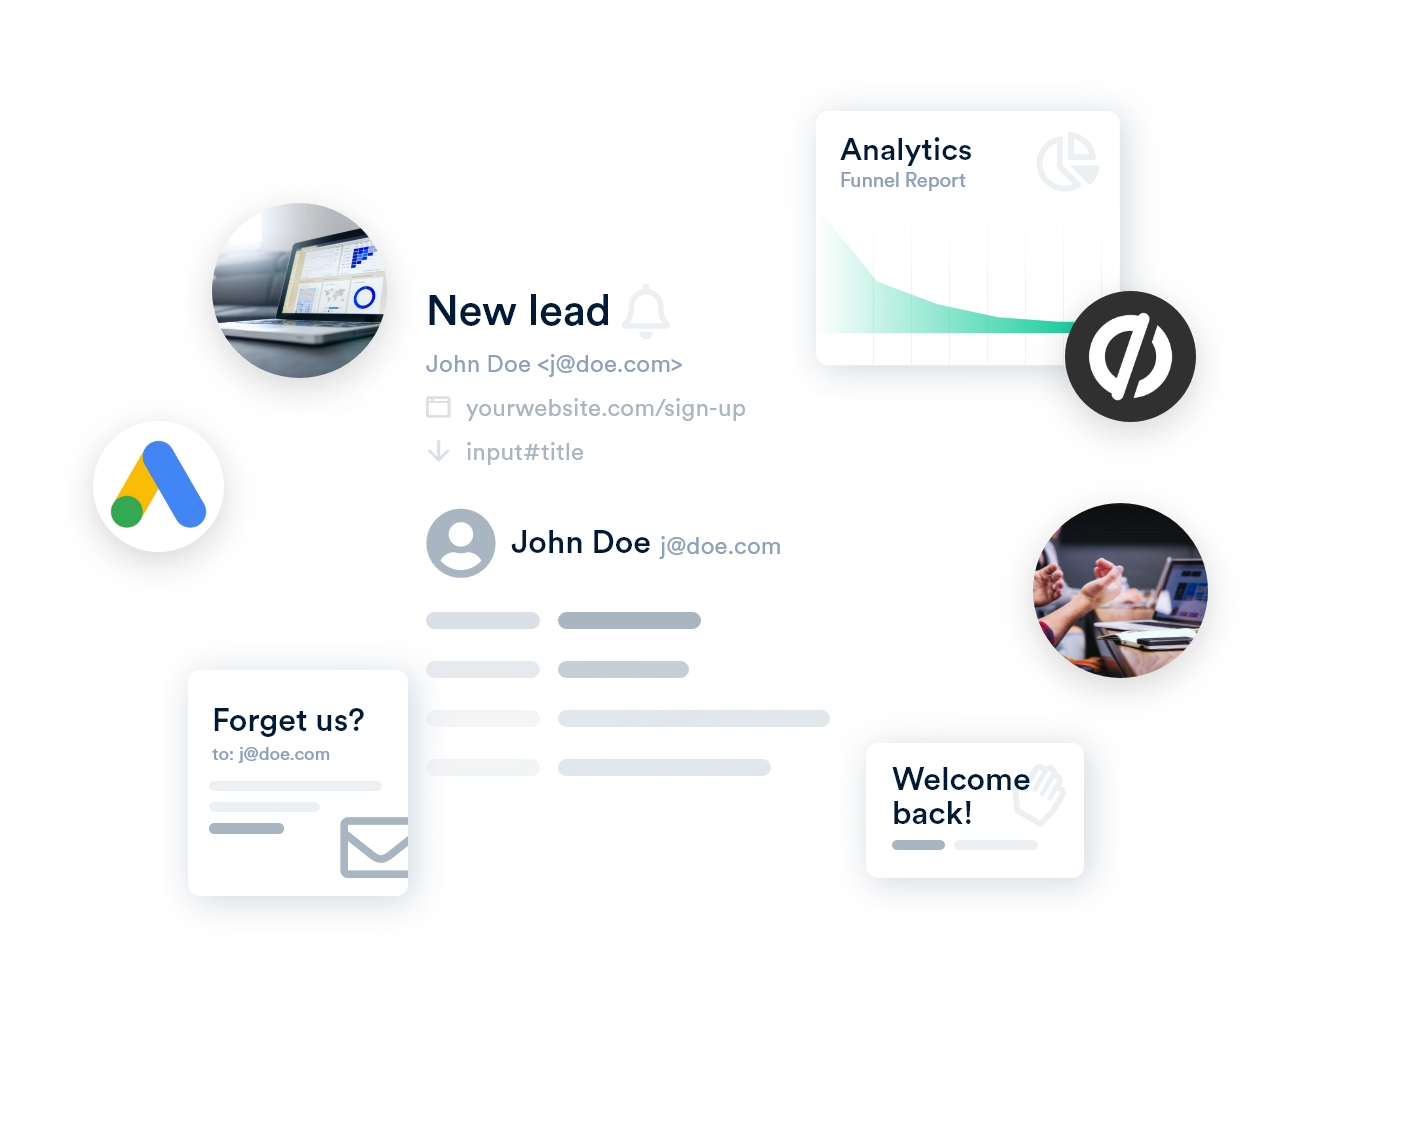 Partial Form Entry Tracking for Software & SaaS by Insiteful - All-in-One Form Abandonment & Optimization Solution | Insiteful